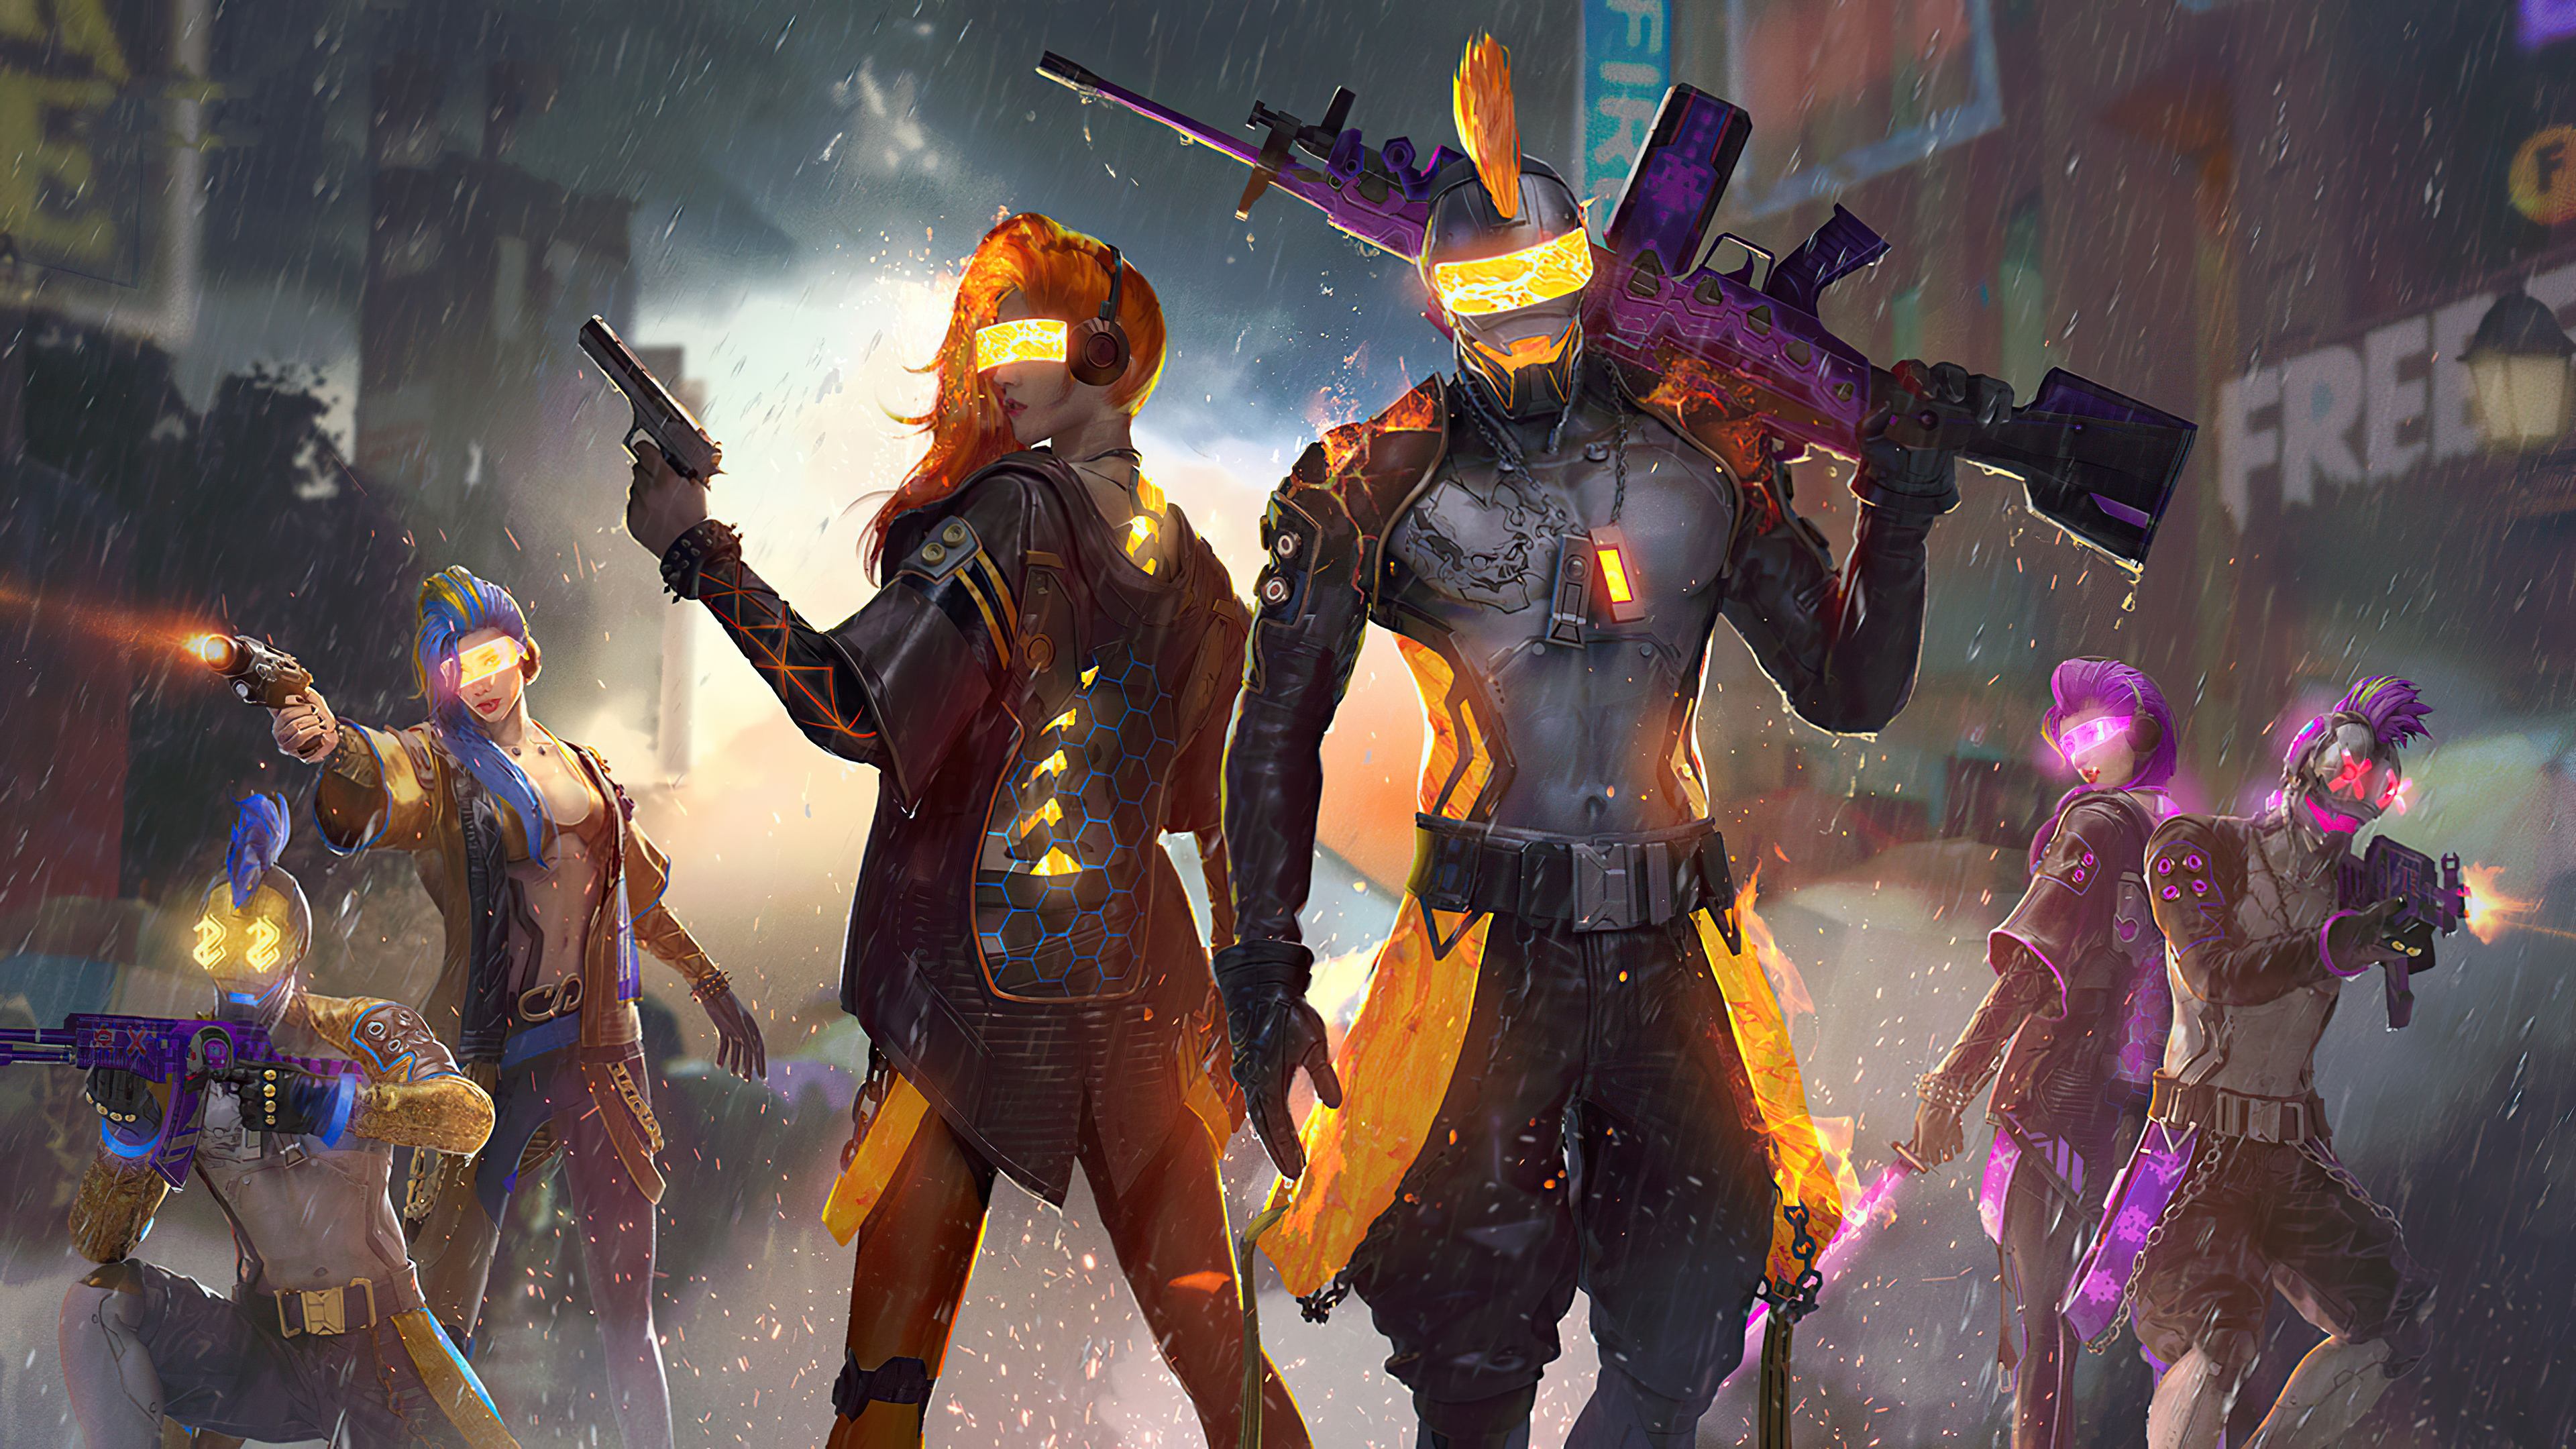 Garena Free Fire Hd Wallpapers 4k Backgrounds Wallpapers Den Full screen full hd 1080p free fire